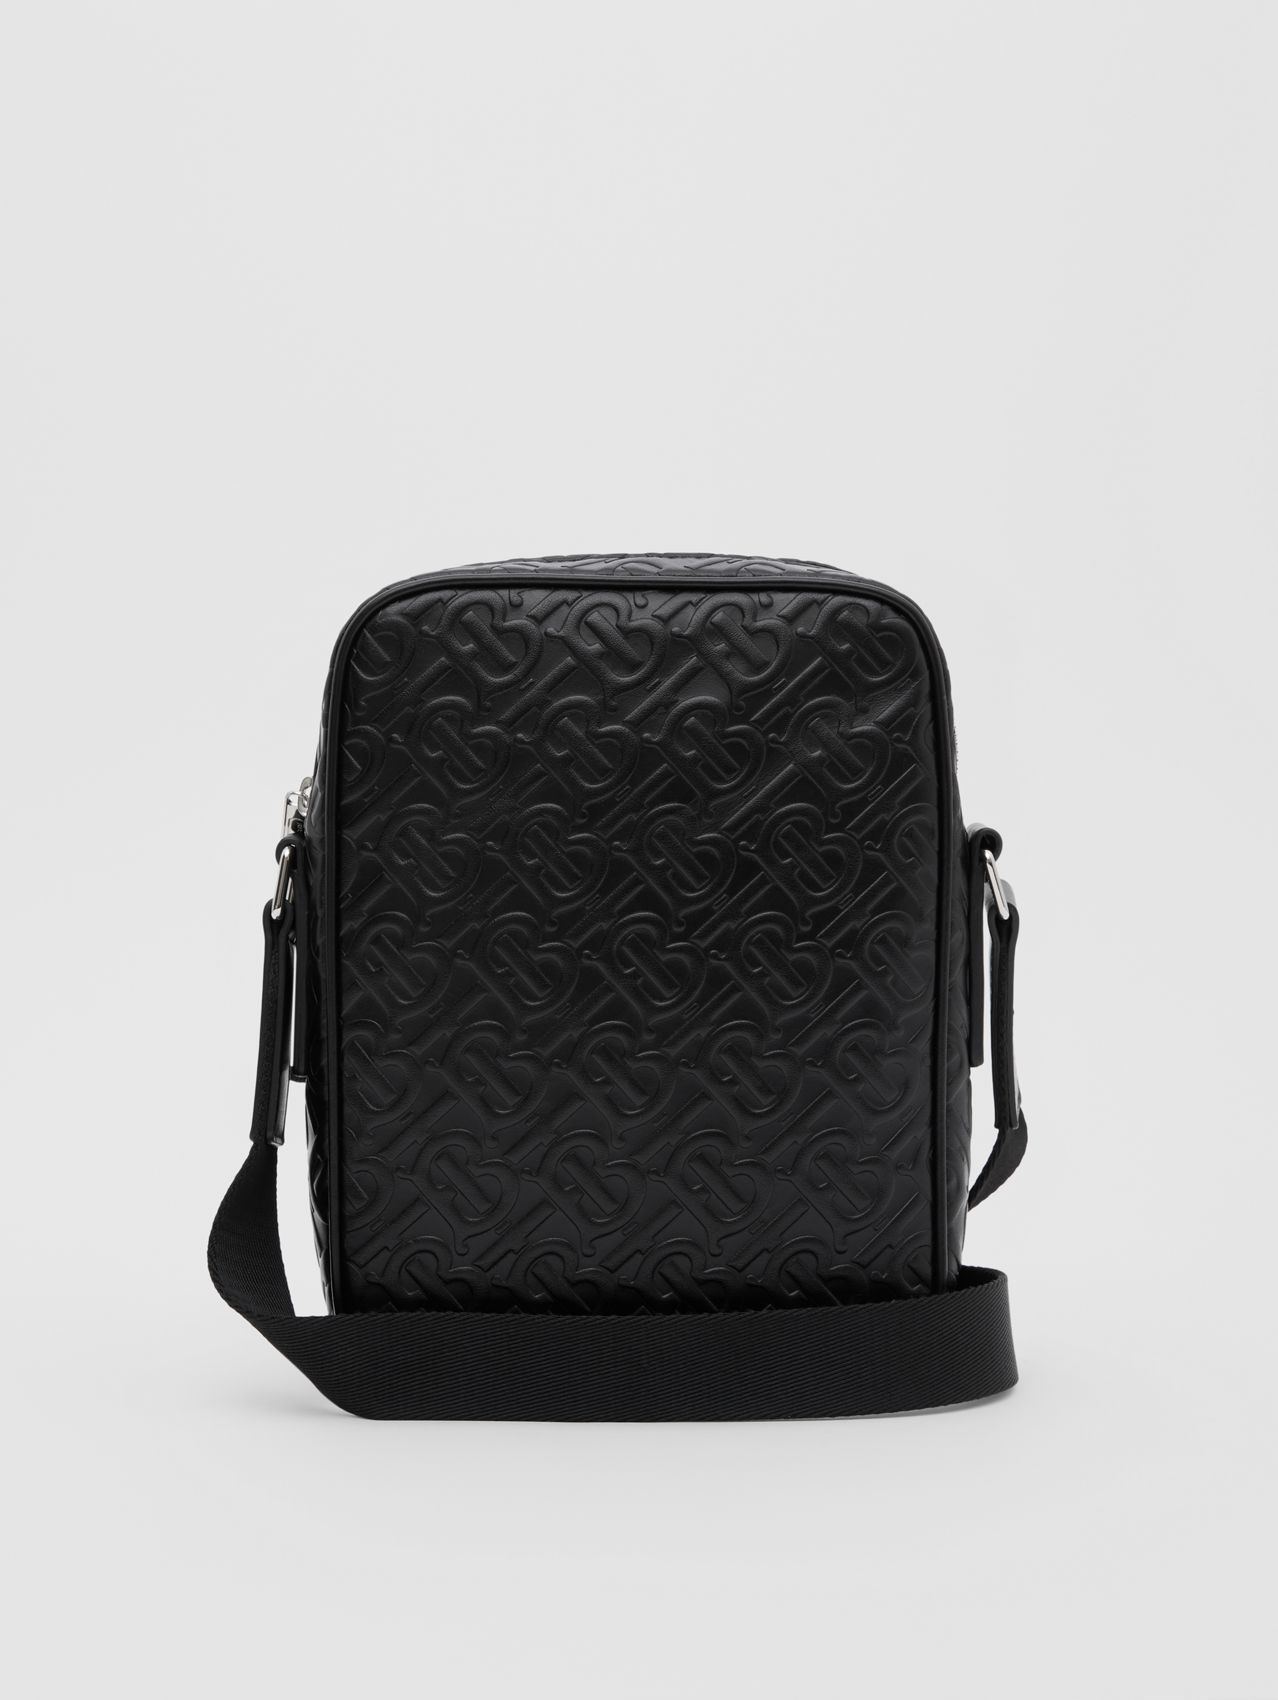 Monogram Leather Crossbody Bag in Black